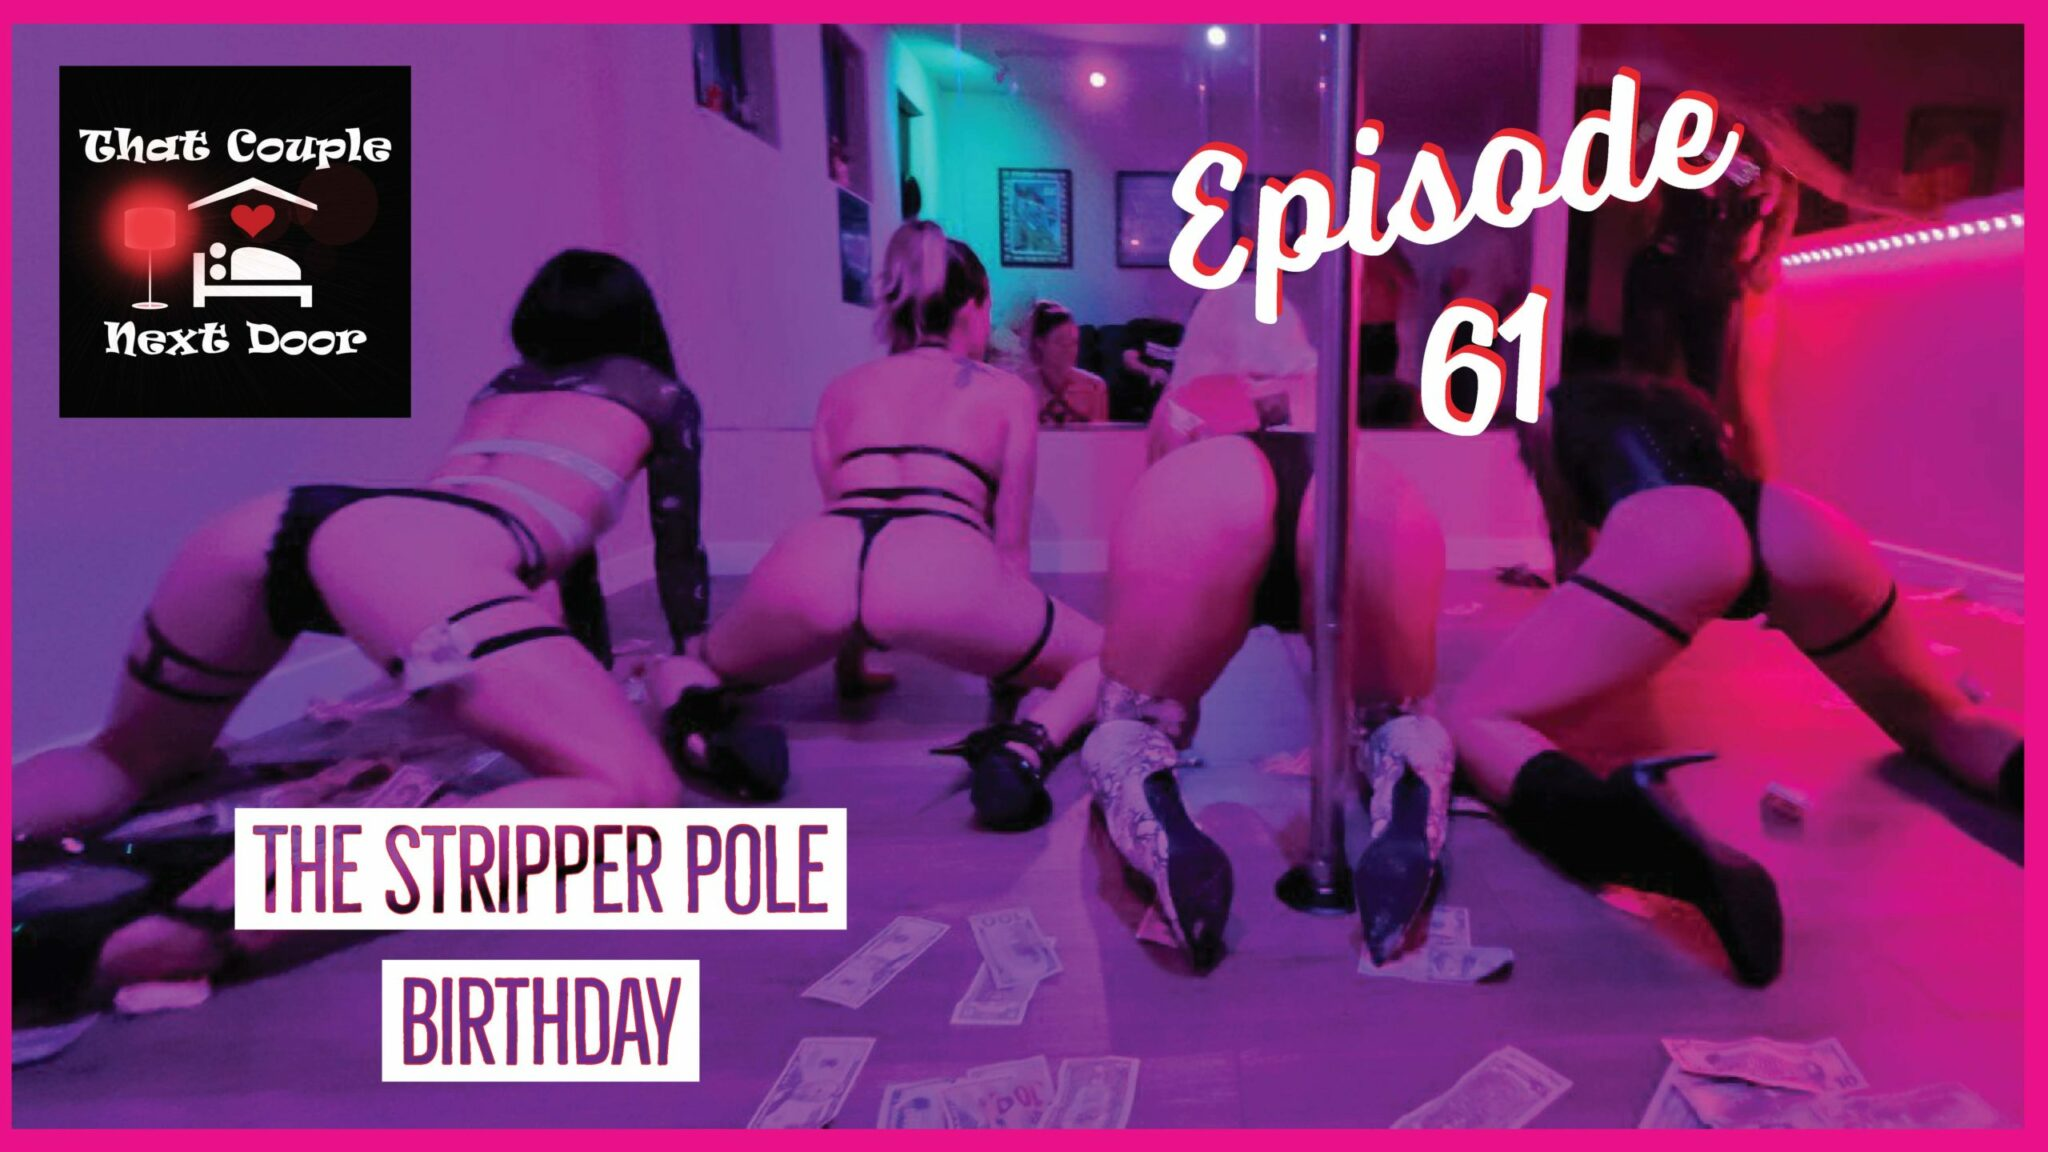 We tell the story of a very sexy birthday girl who got a stripper pole as a gift, installed by her husband and friends while she was distracted.  We recreate our Love is Art painting and announce our contest winners for the male masturbator...